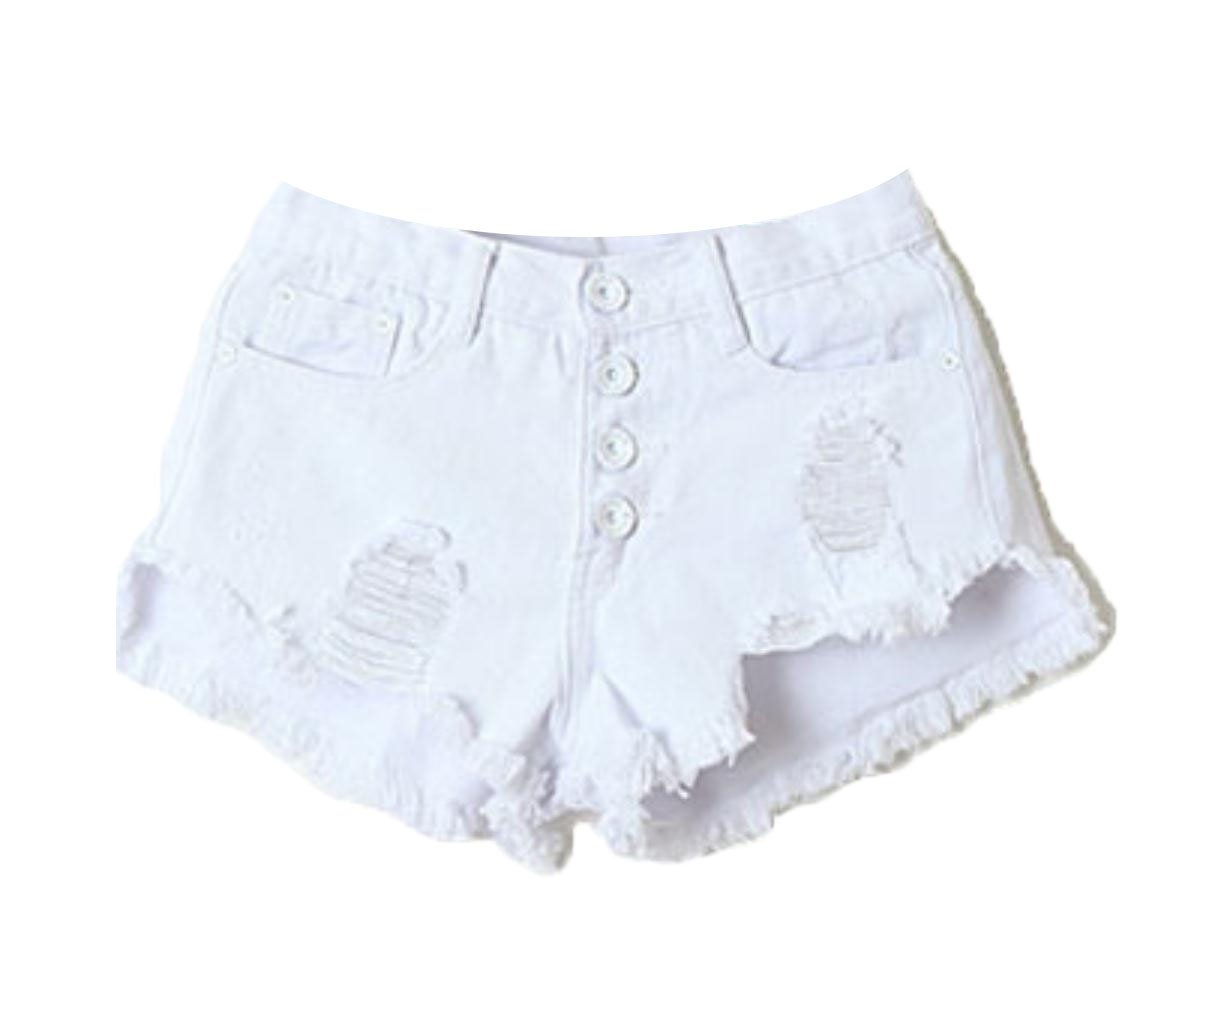 Buildhigh Womens Buckle Fringed Ripped Summer Hot Pants Individuality Jean Shorts White XS